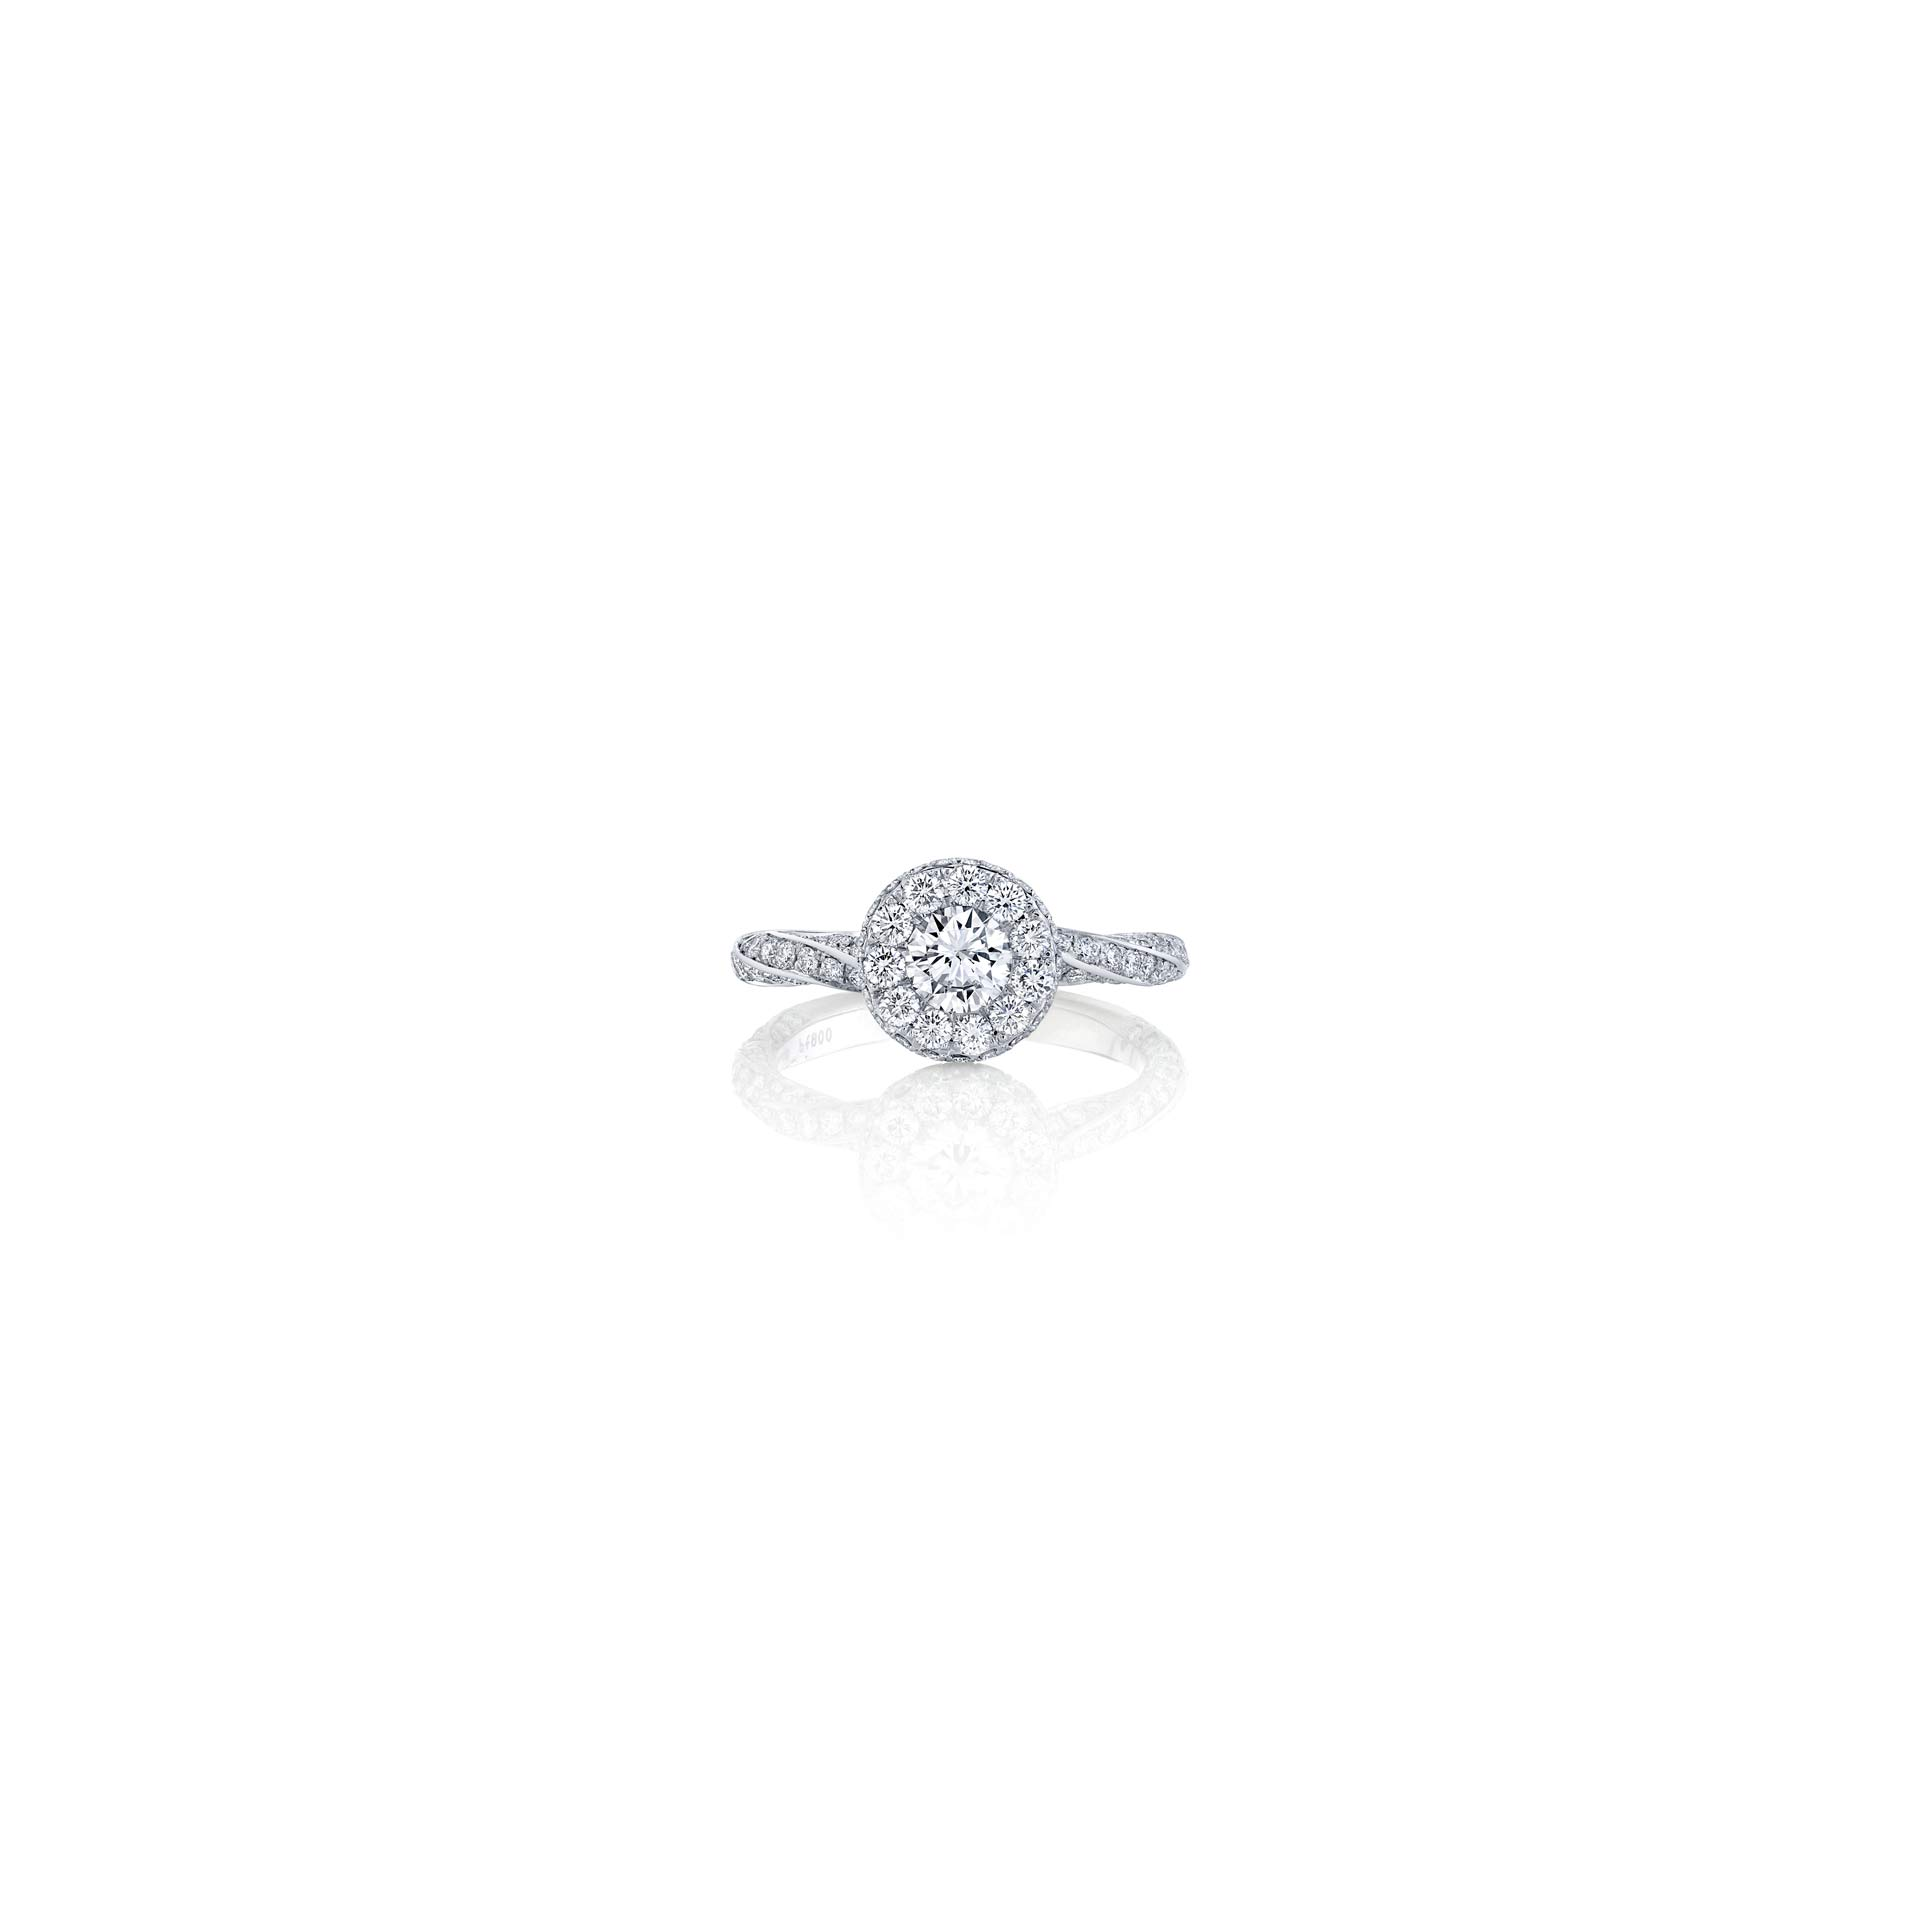 Camille Round Brilliant Seamless Halo® Engagement Ring with diamond pavé in 18k White Gold Front View by Oui by Jean DoussetCamille Round Brilliant Seamless Halo® Engagement Ring with diamond pavé in 18k White Gold by Oui by Jean Dousset